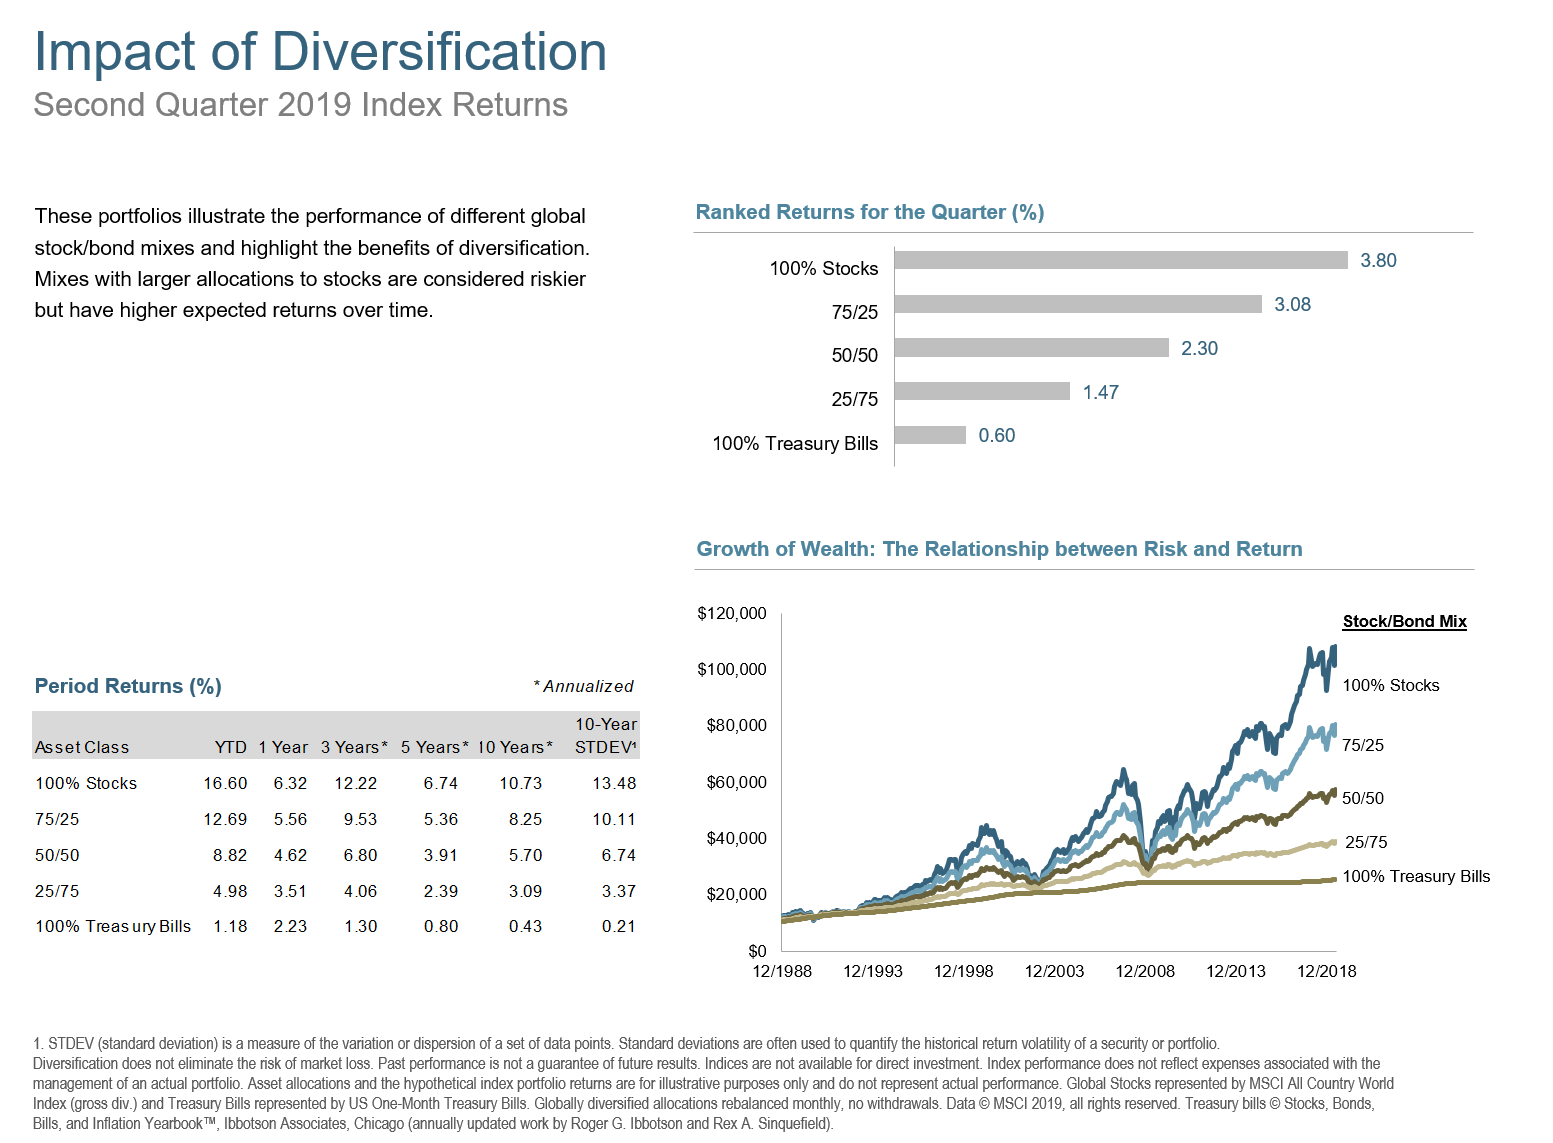 Q2 2019 Impact of Diversification